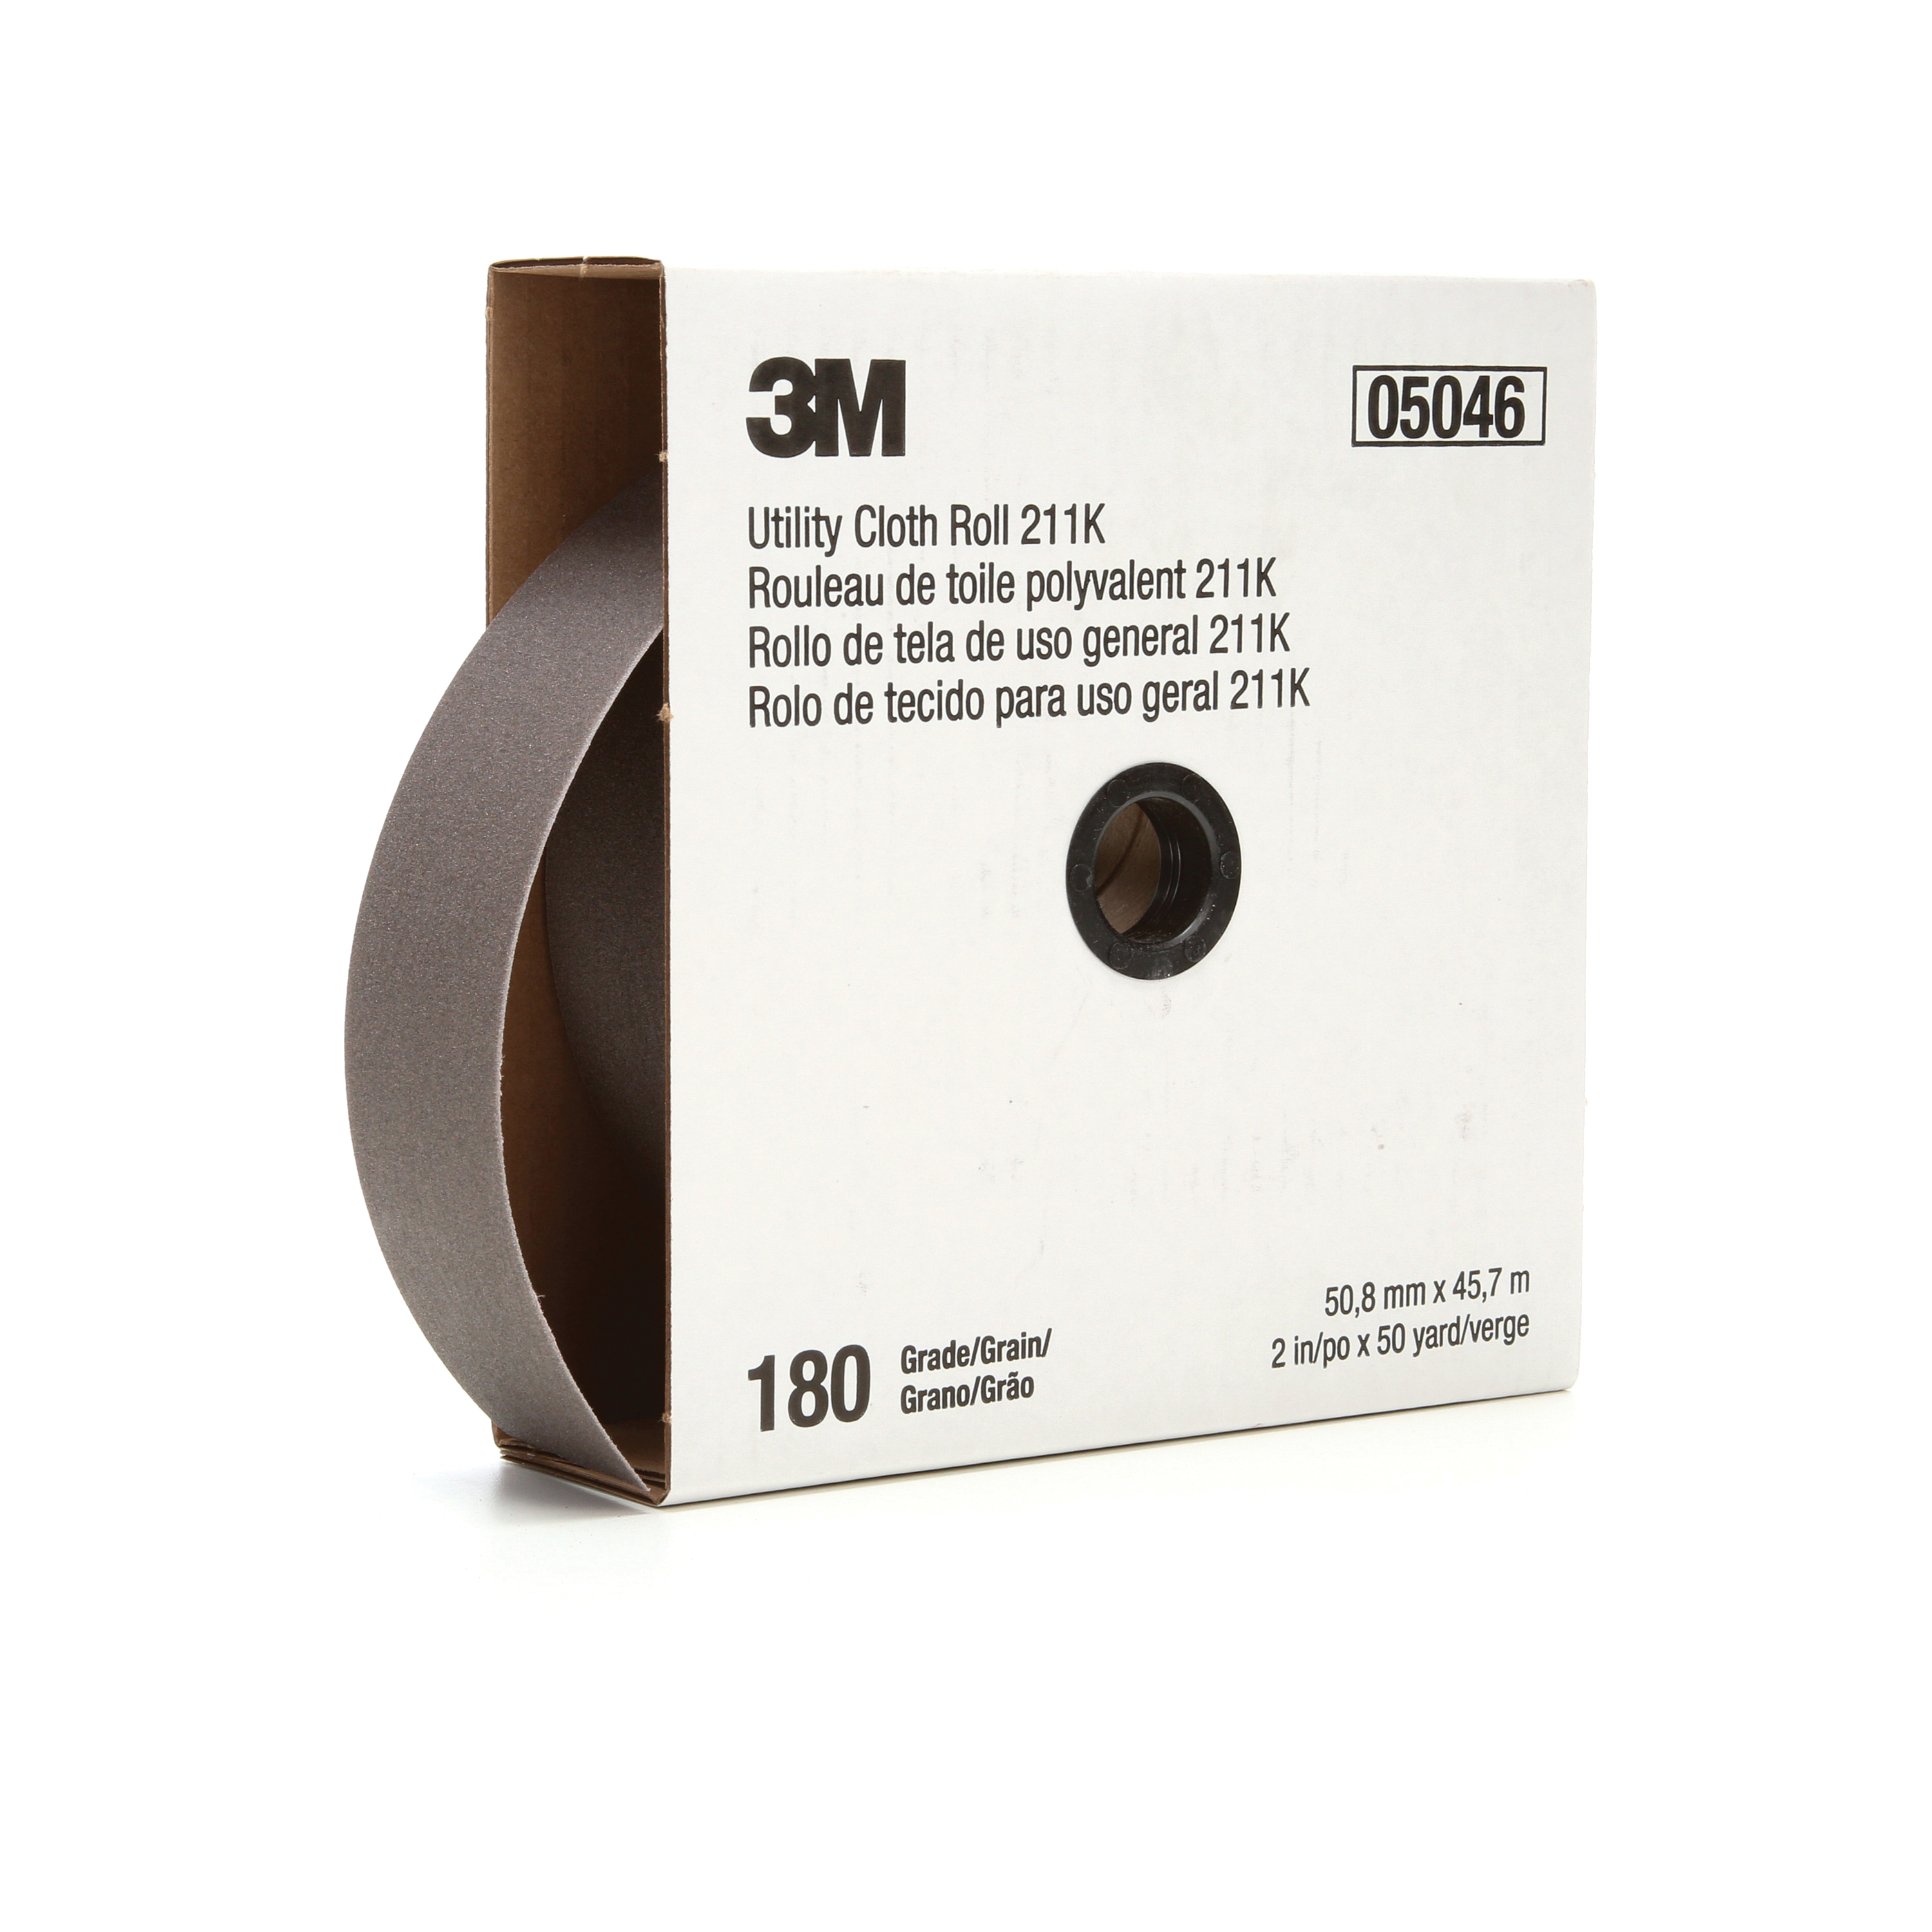 3M™ 051144-05046 Utility Cloth Roll, 2 in W x 50 yd L, 180 Grit, Very Fine Grade, Aluminum Oxide Abrasive, Cloth Backing